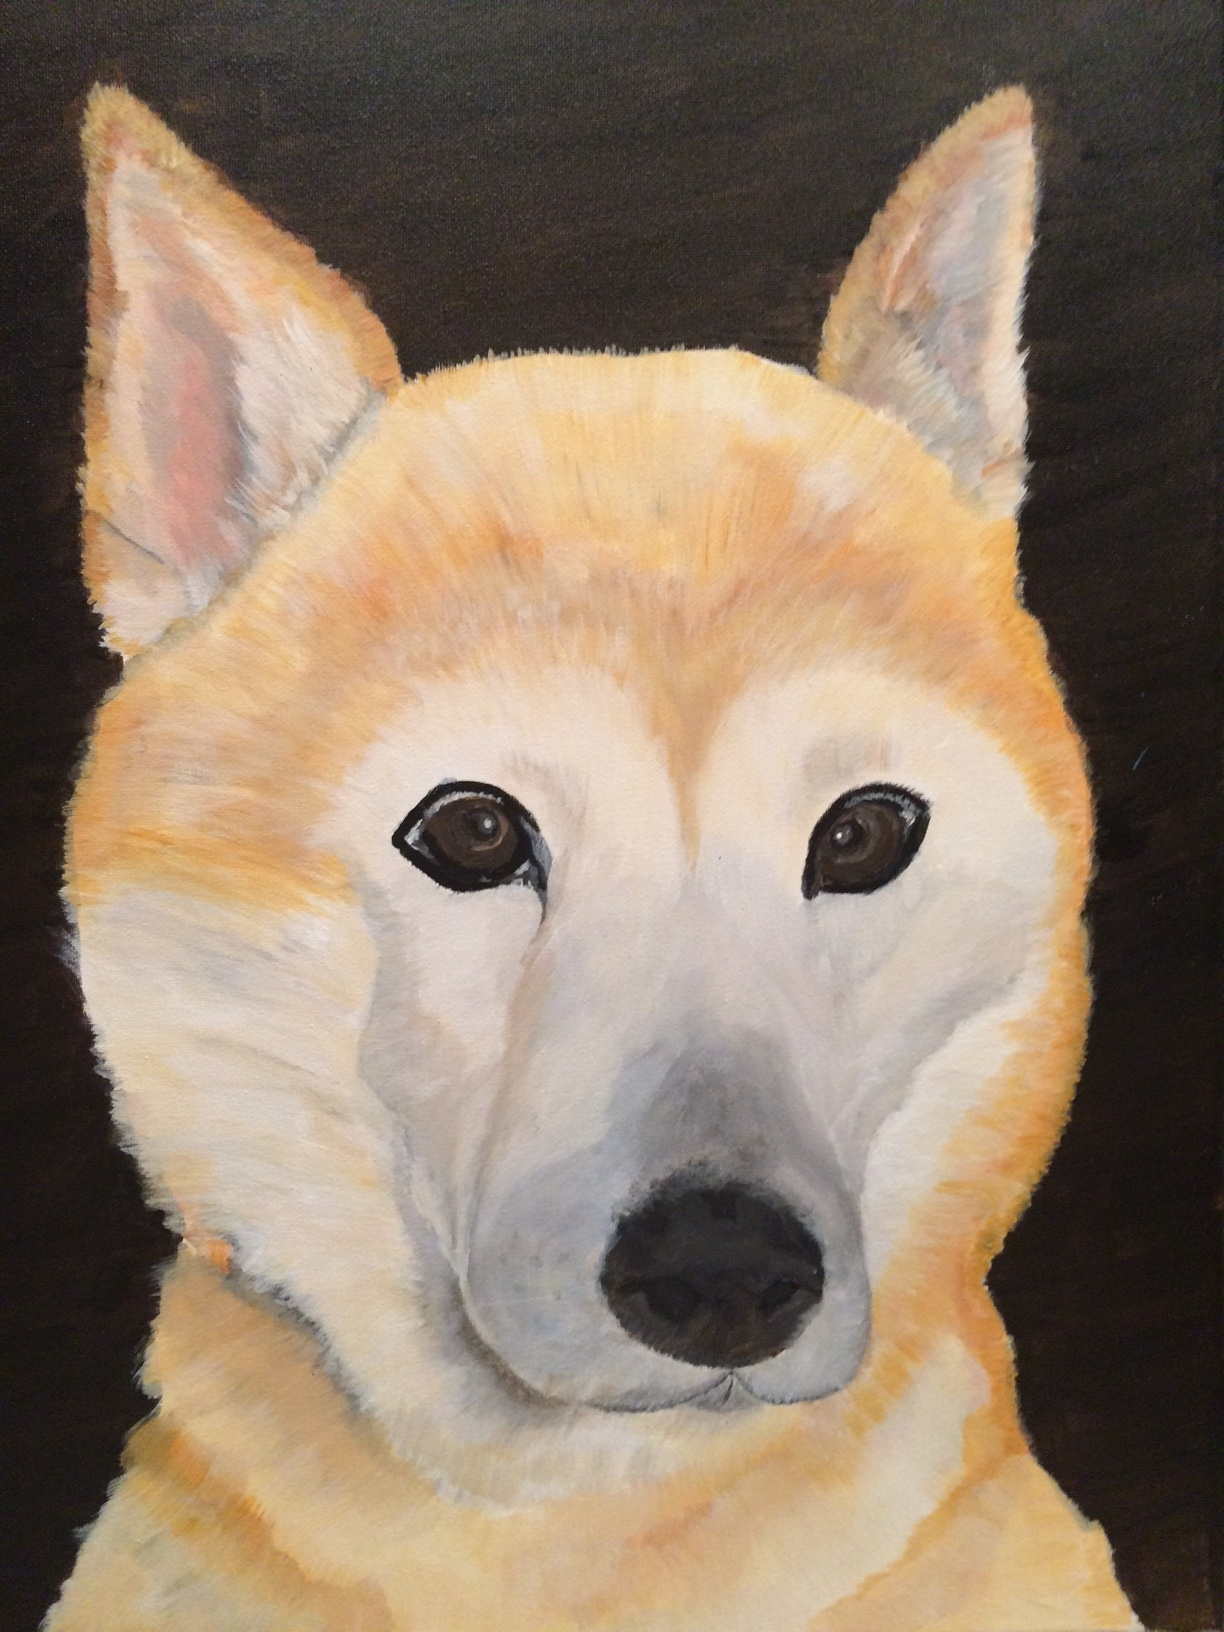 In memory of Patches.. My Shiba Inu